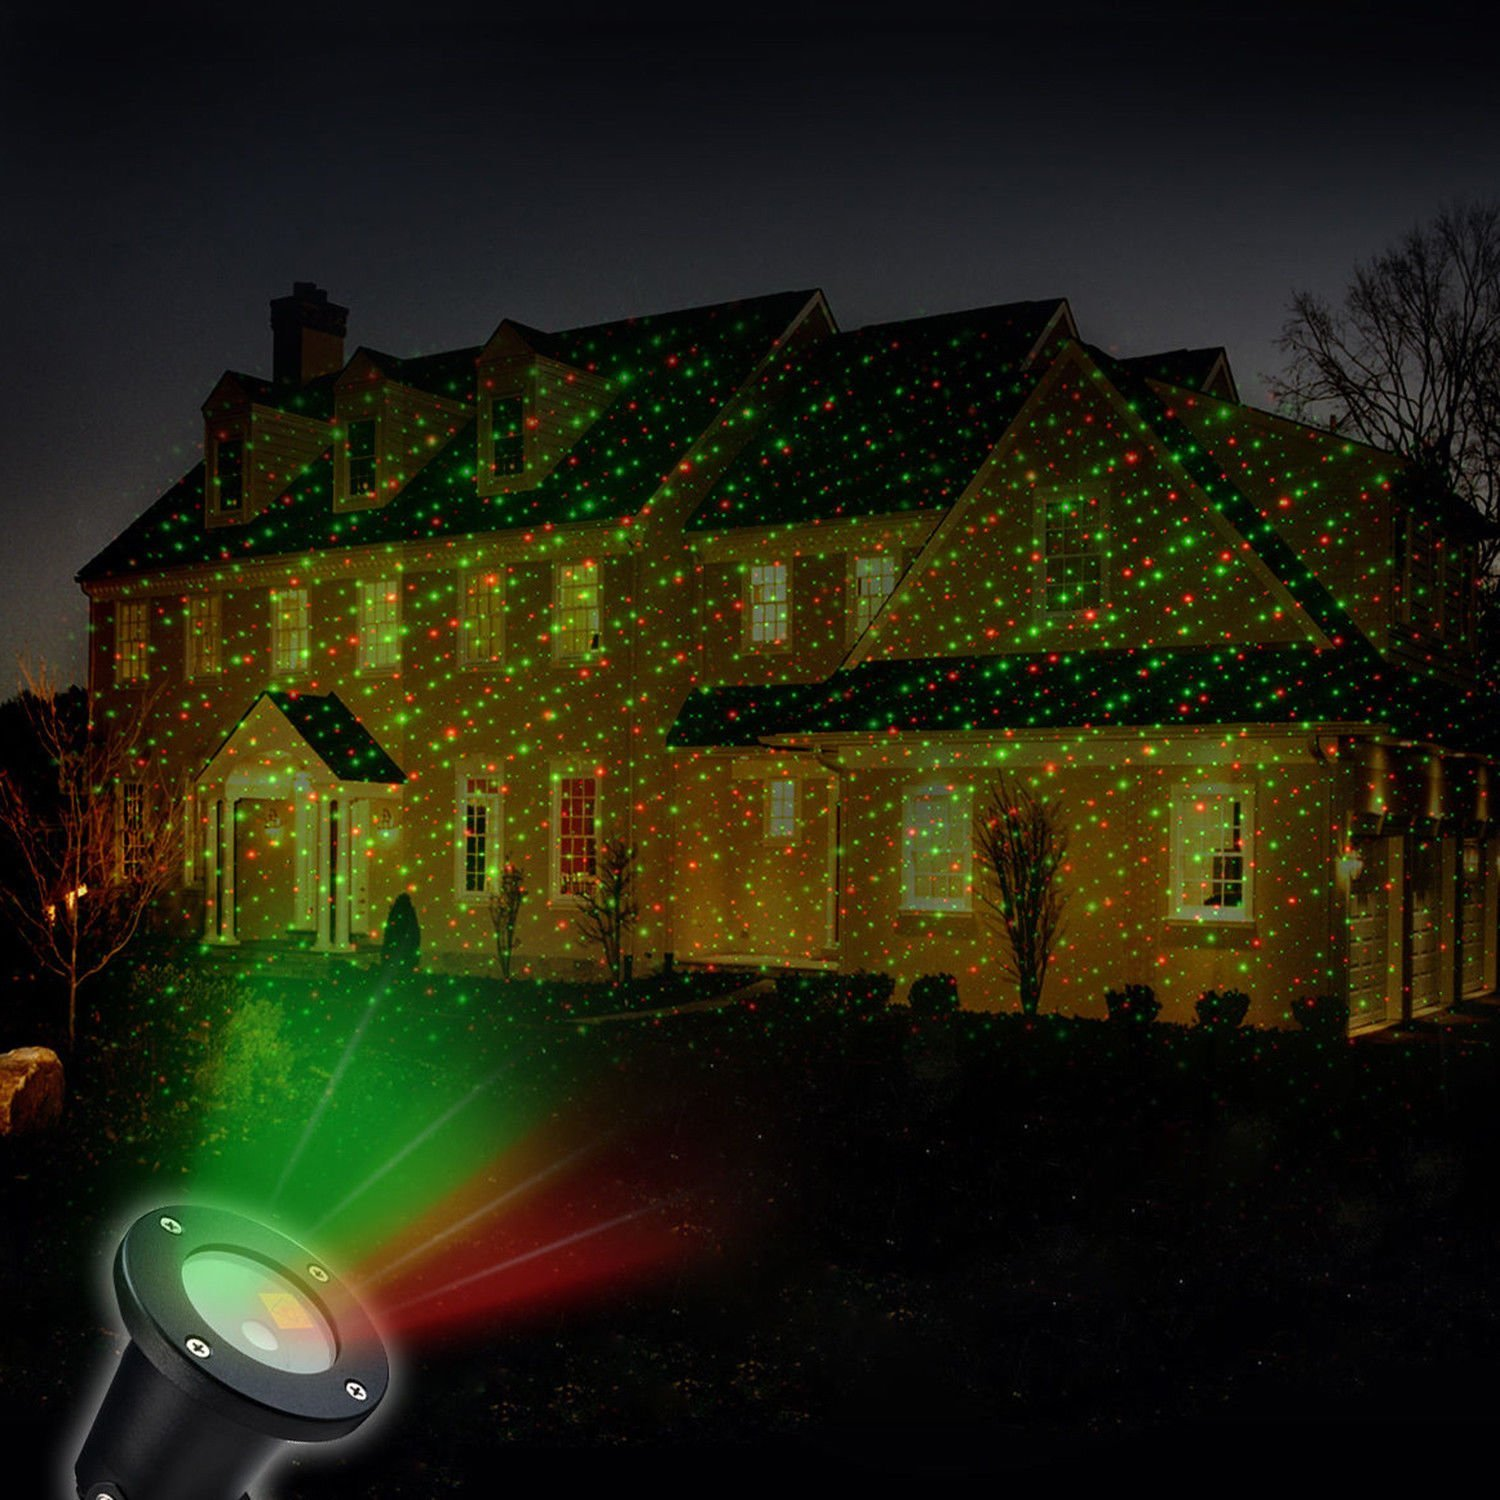 Image of: Solar Powered Outdoor Christmas Laser Show Light Projector With 4 Images For The Holiday Great For Christmas Decoration Or Simply To Add Decoration Anytime No Wires Wireless Cordless Walmart Com Walmart Com